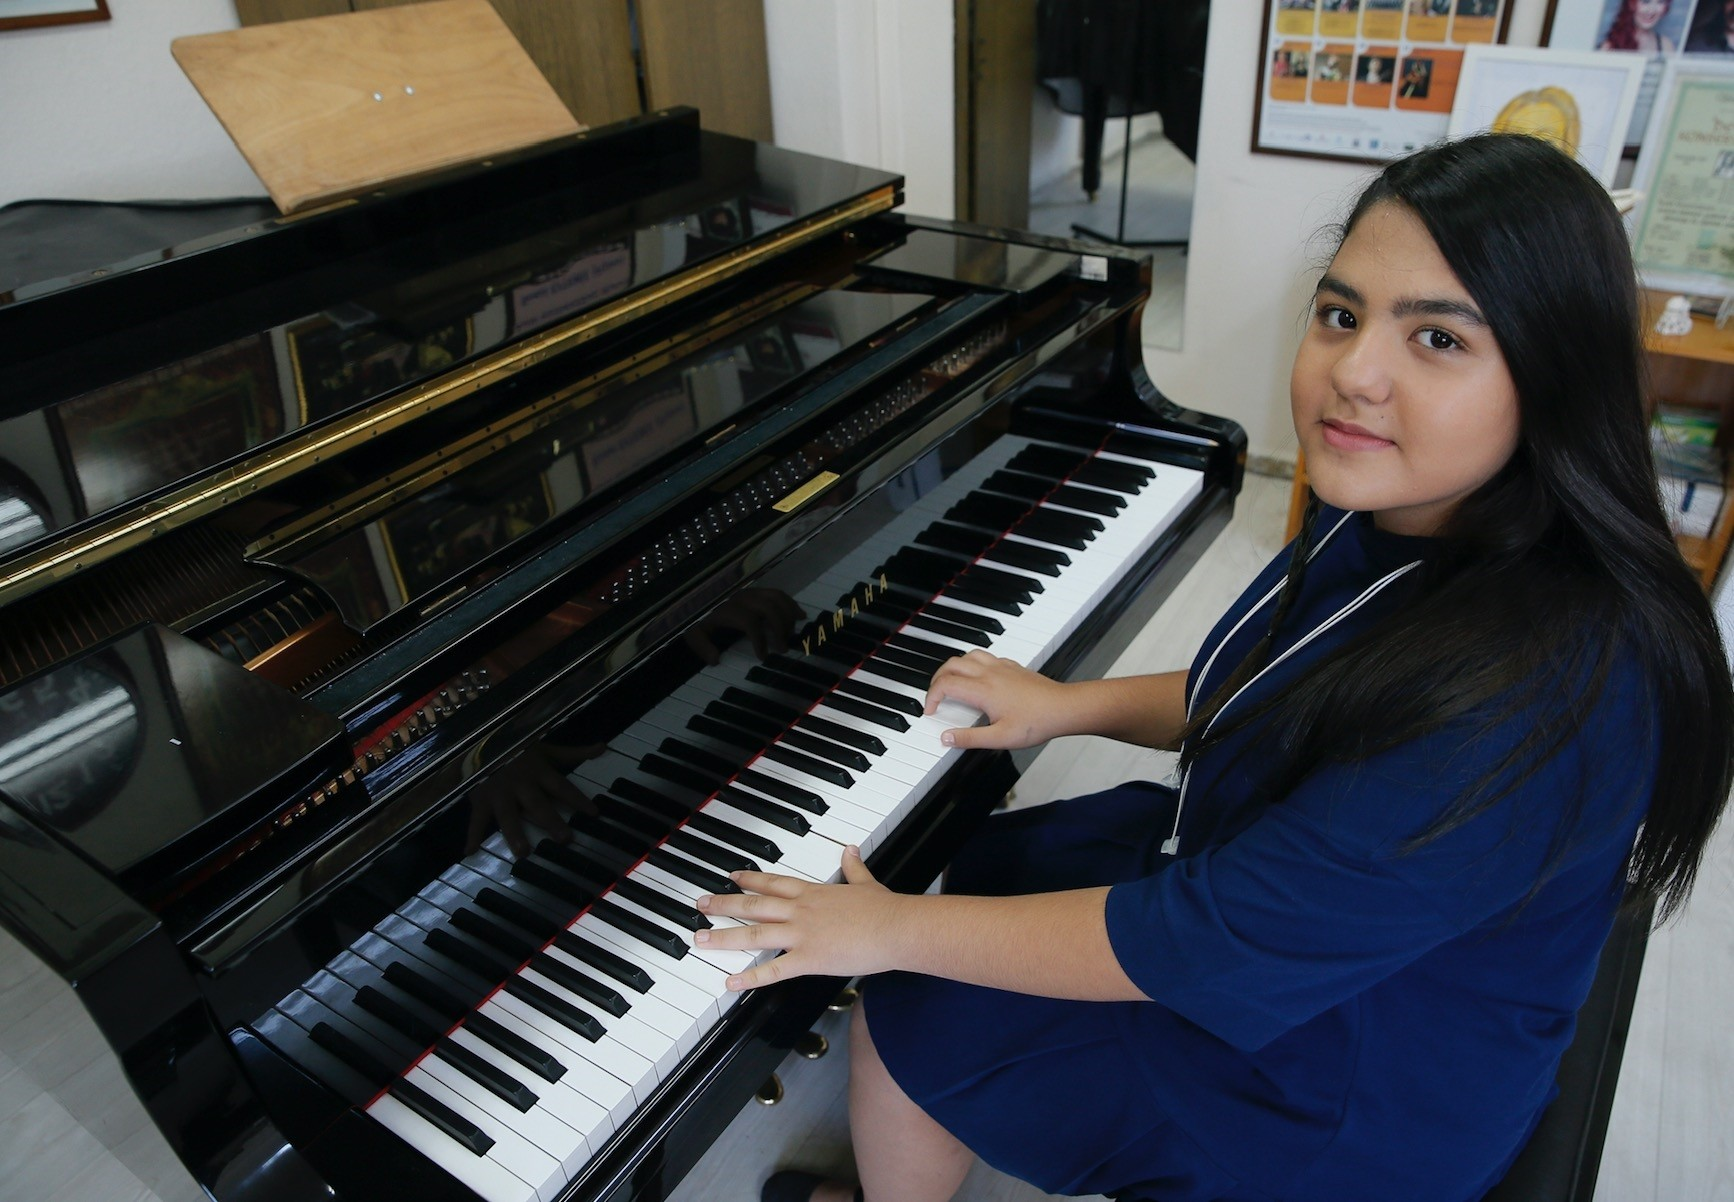 Tunay Kurban won second place at the Mozart Academy International Piano Competition and the Tadini International Music Competition in Italy, which was organized on June 5.